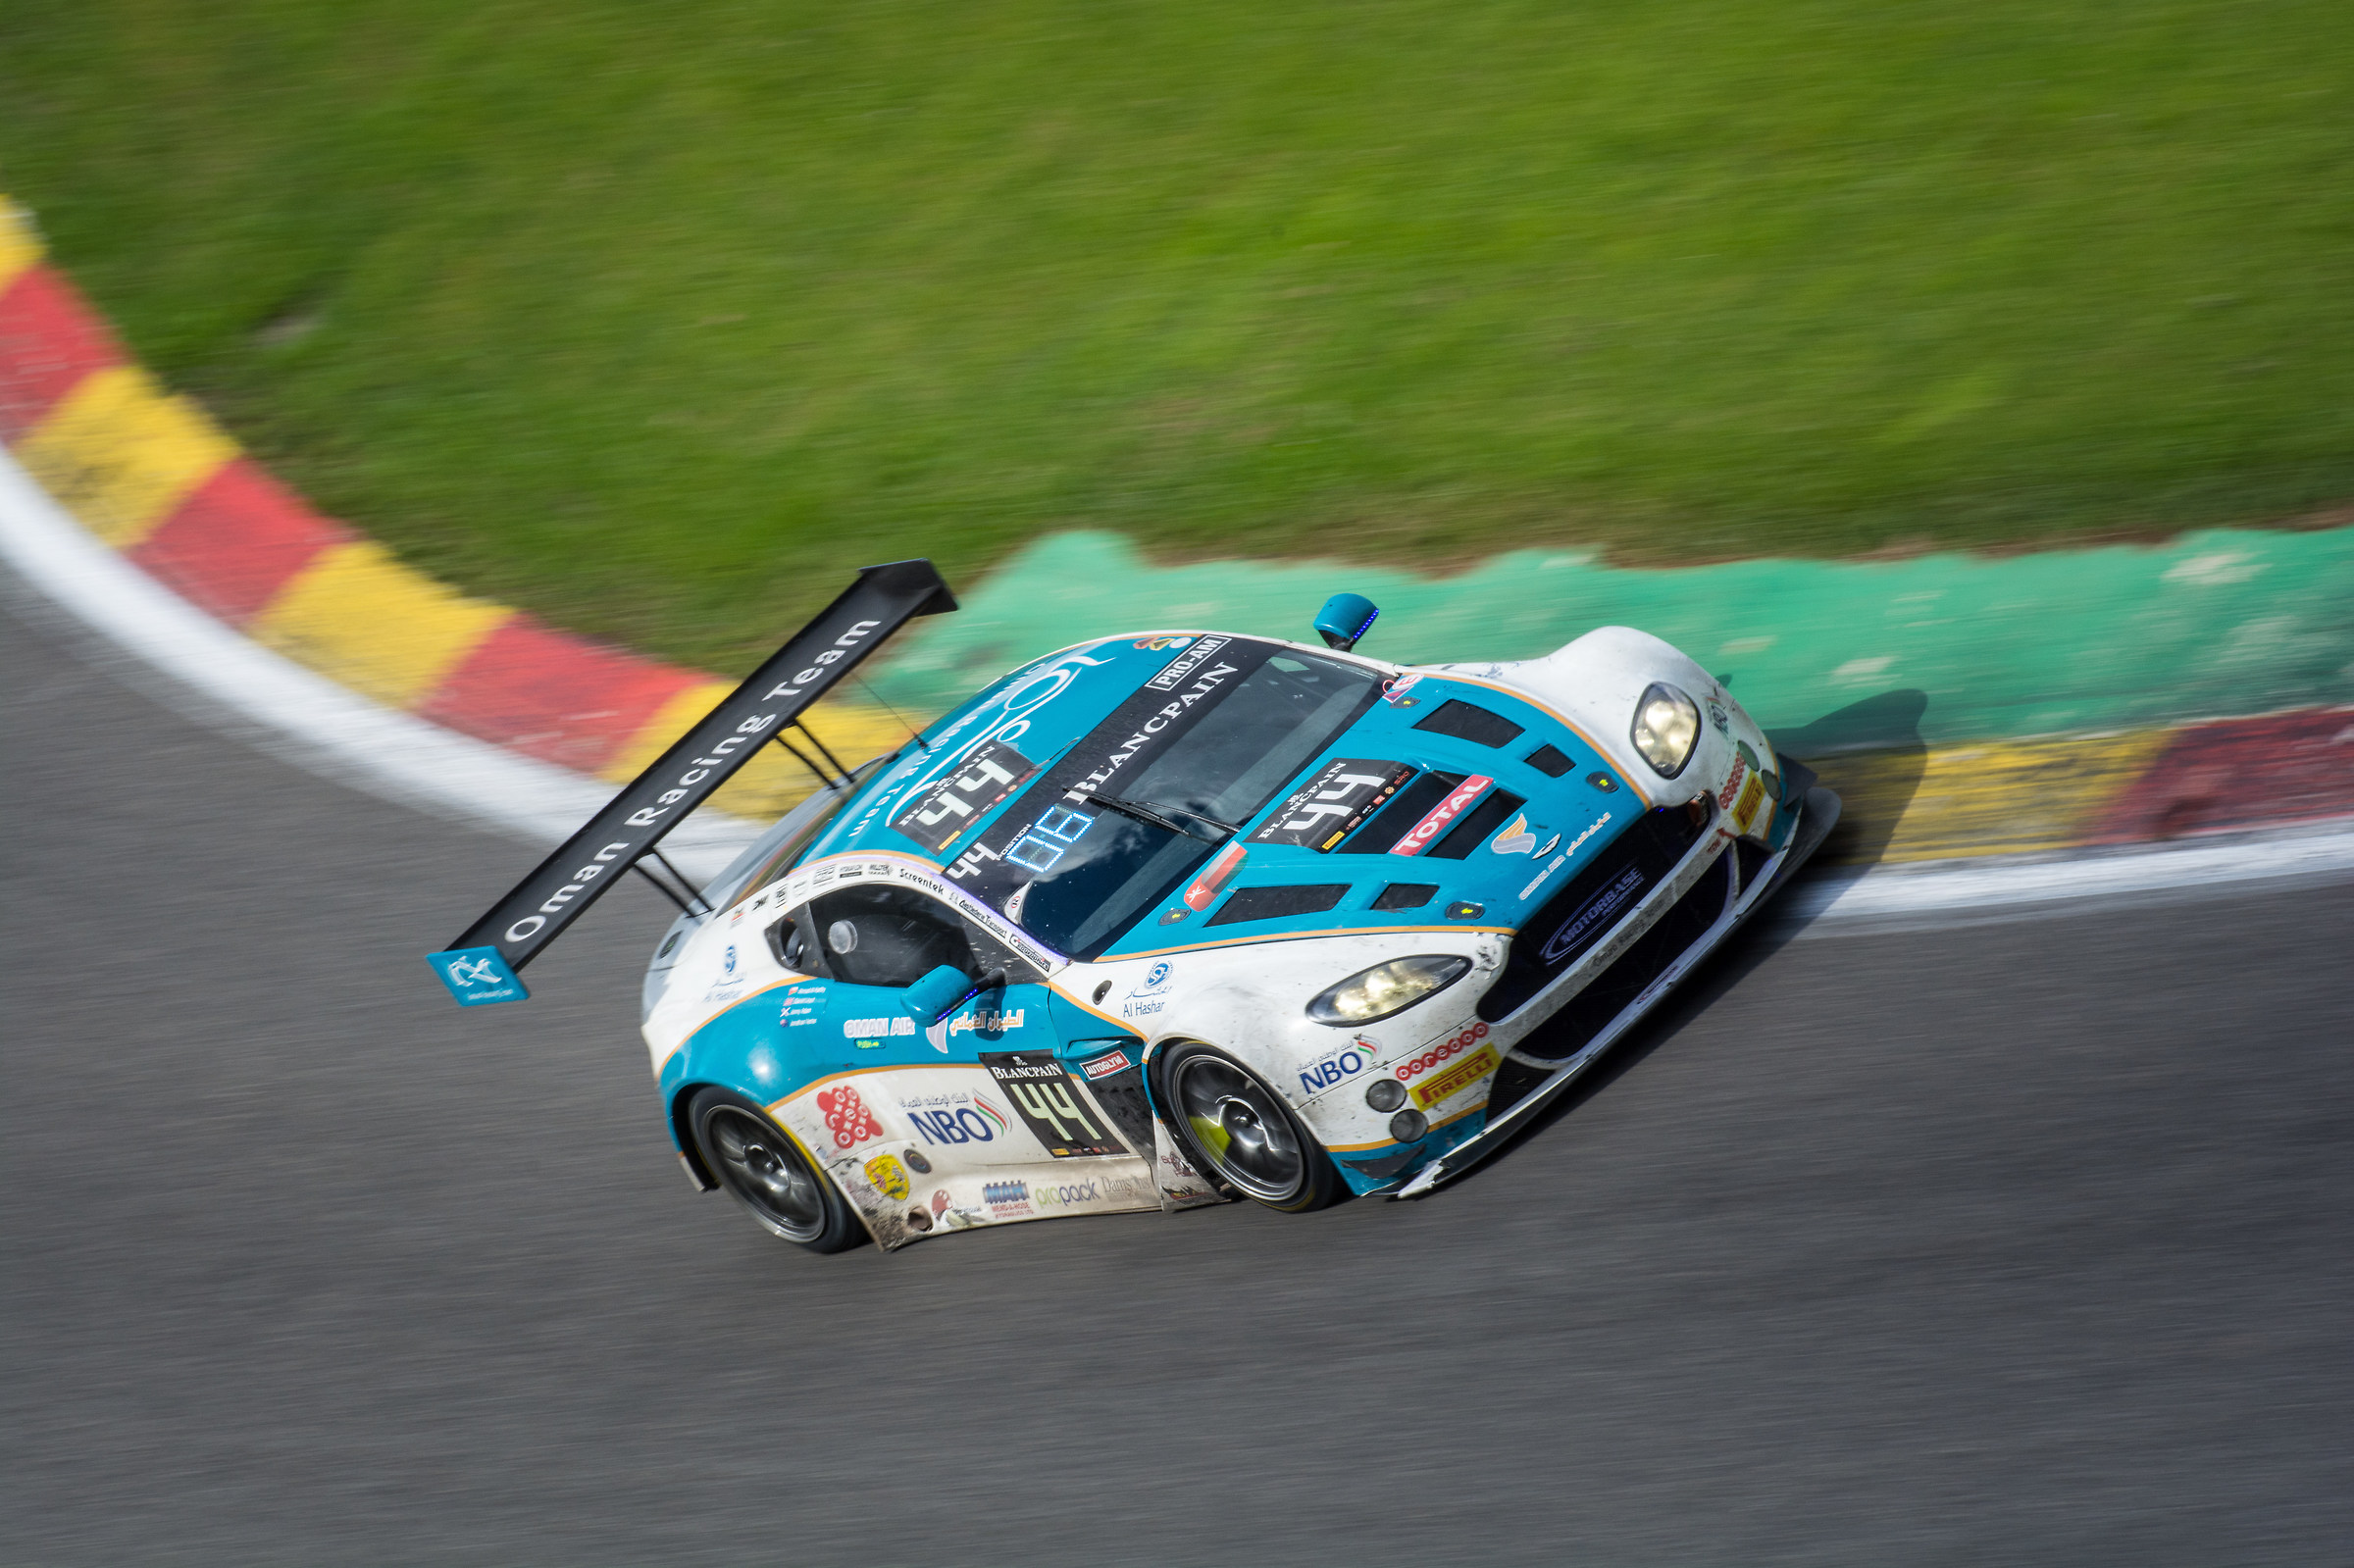 Aston Martin V12 Vantage GT3 - Blancpain 24hrs of Spa...